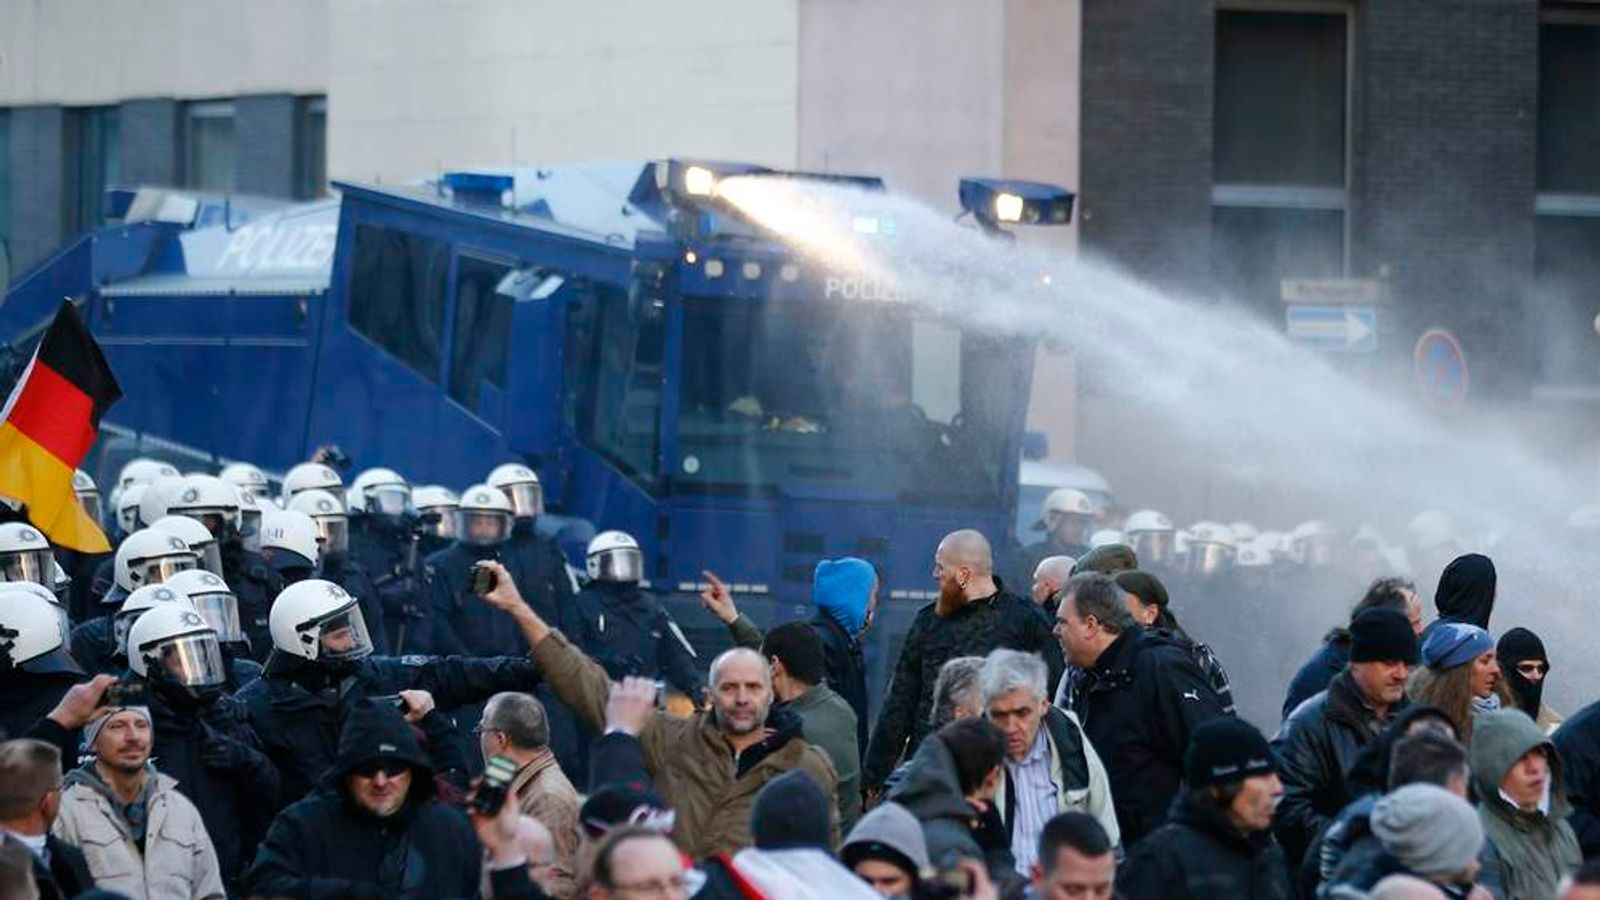 Police use water cannon during protest march by supporters of PEGIDA protest in Cologne